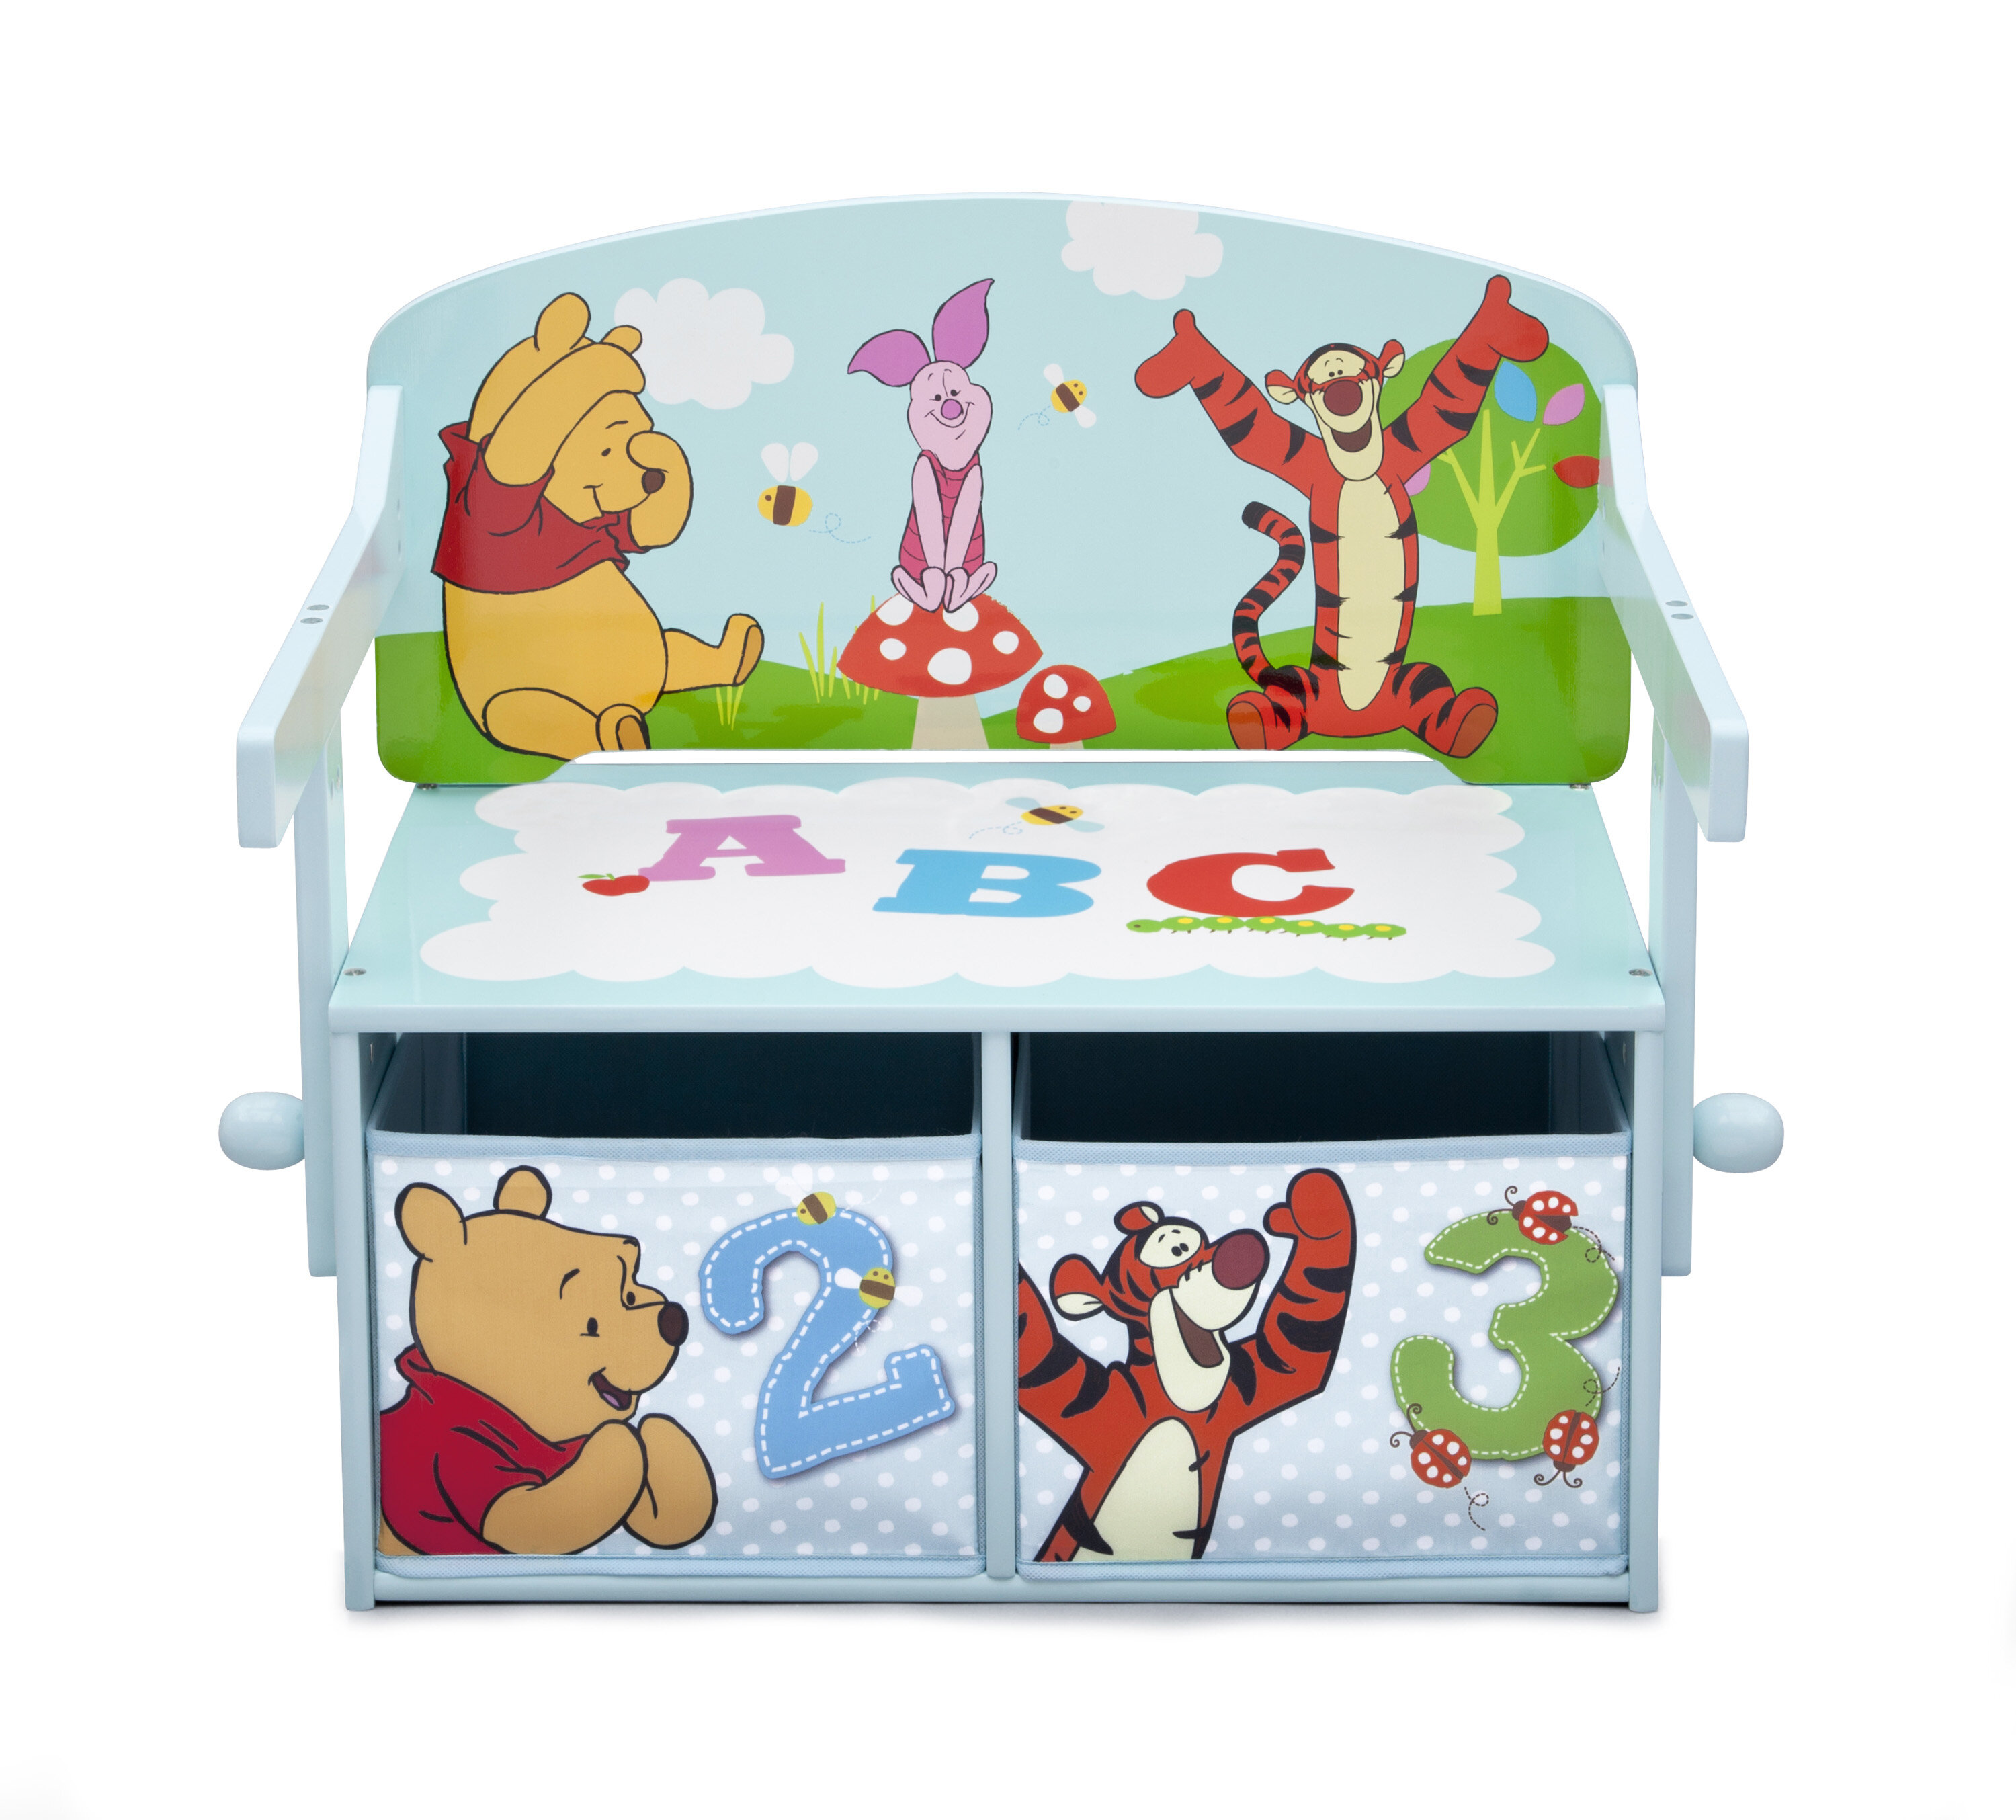 mdf kid box itm lid children organiser white toy chest westwood bench sentinel storage